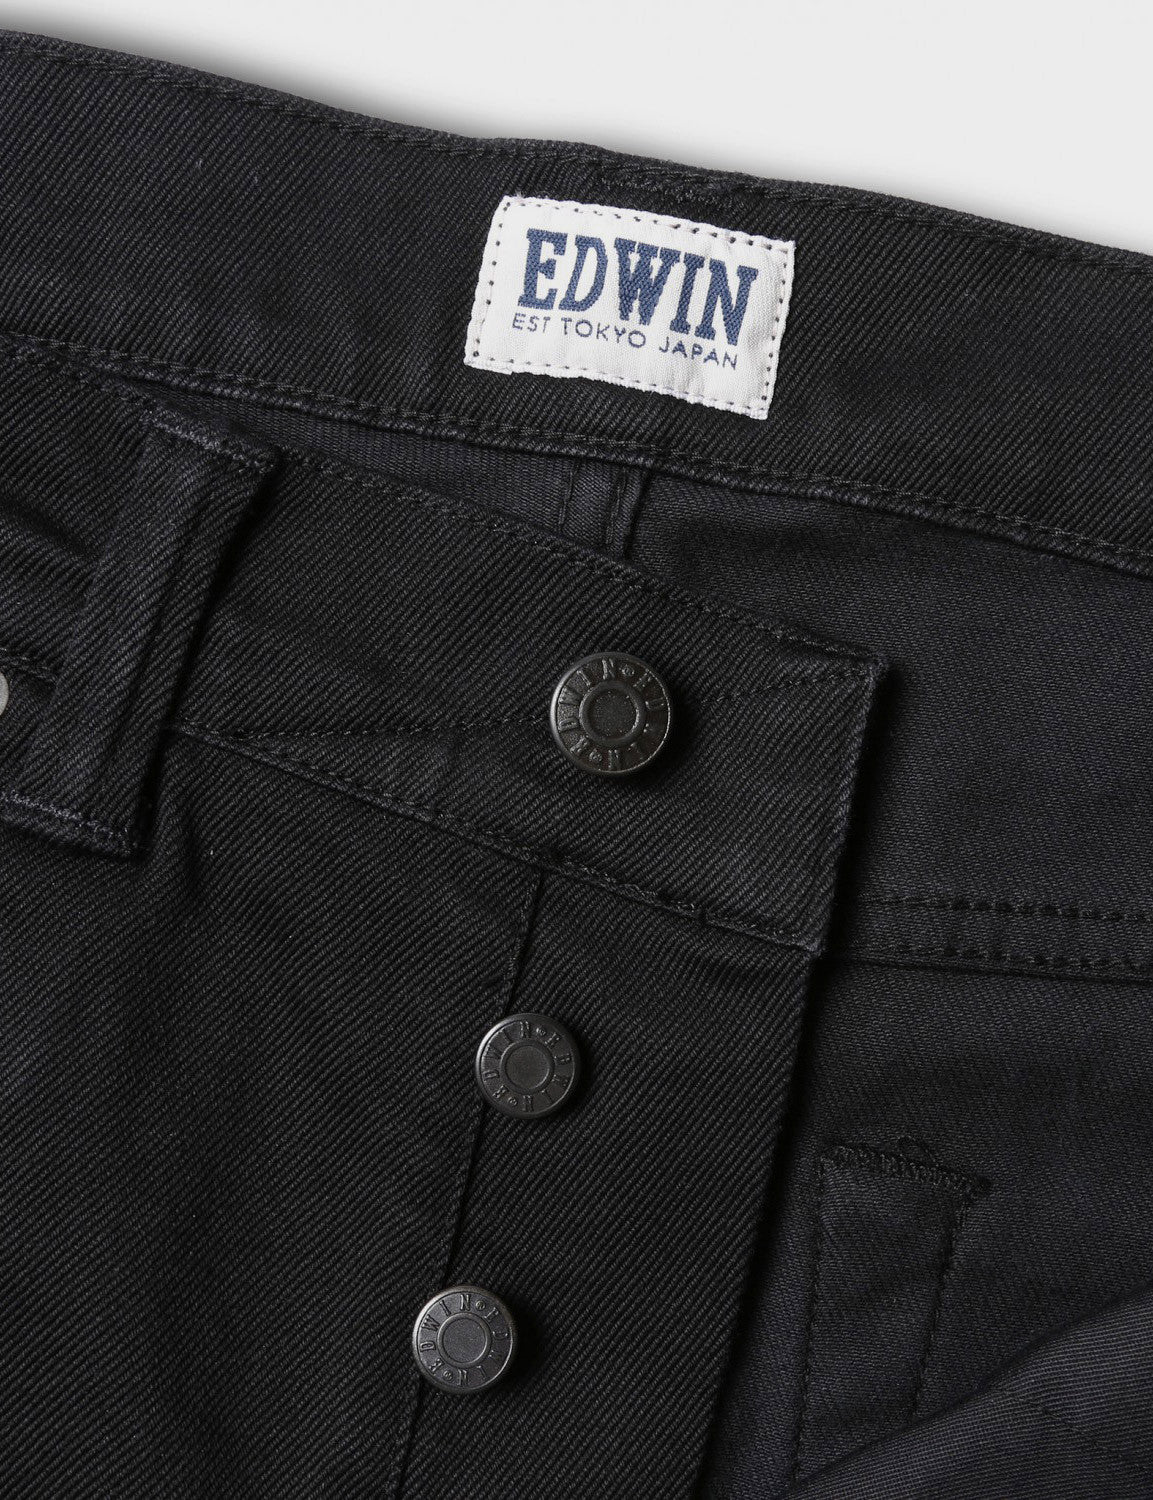 Edwin ED-80 Slim Tapered Jeans 11oz - Black Rinsed